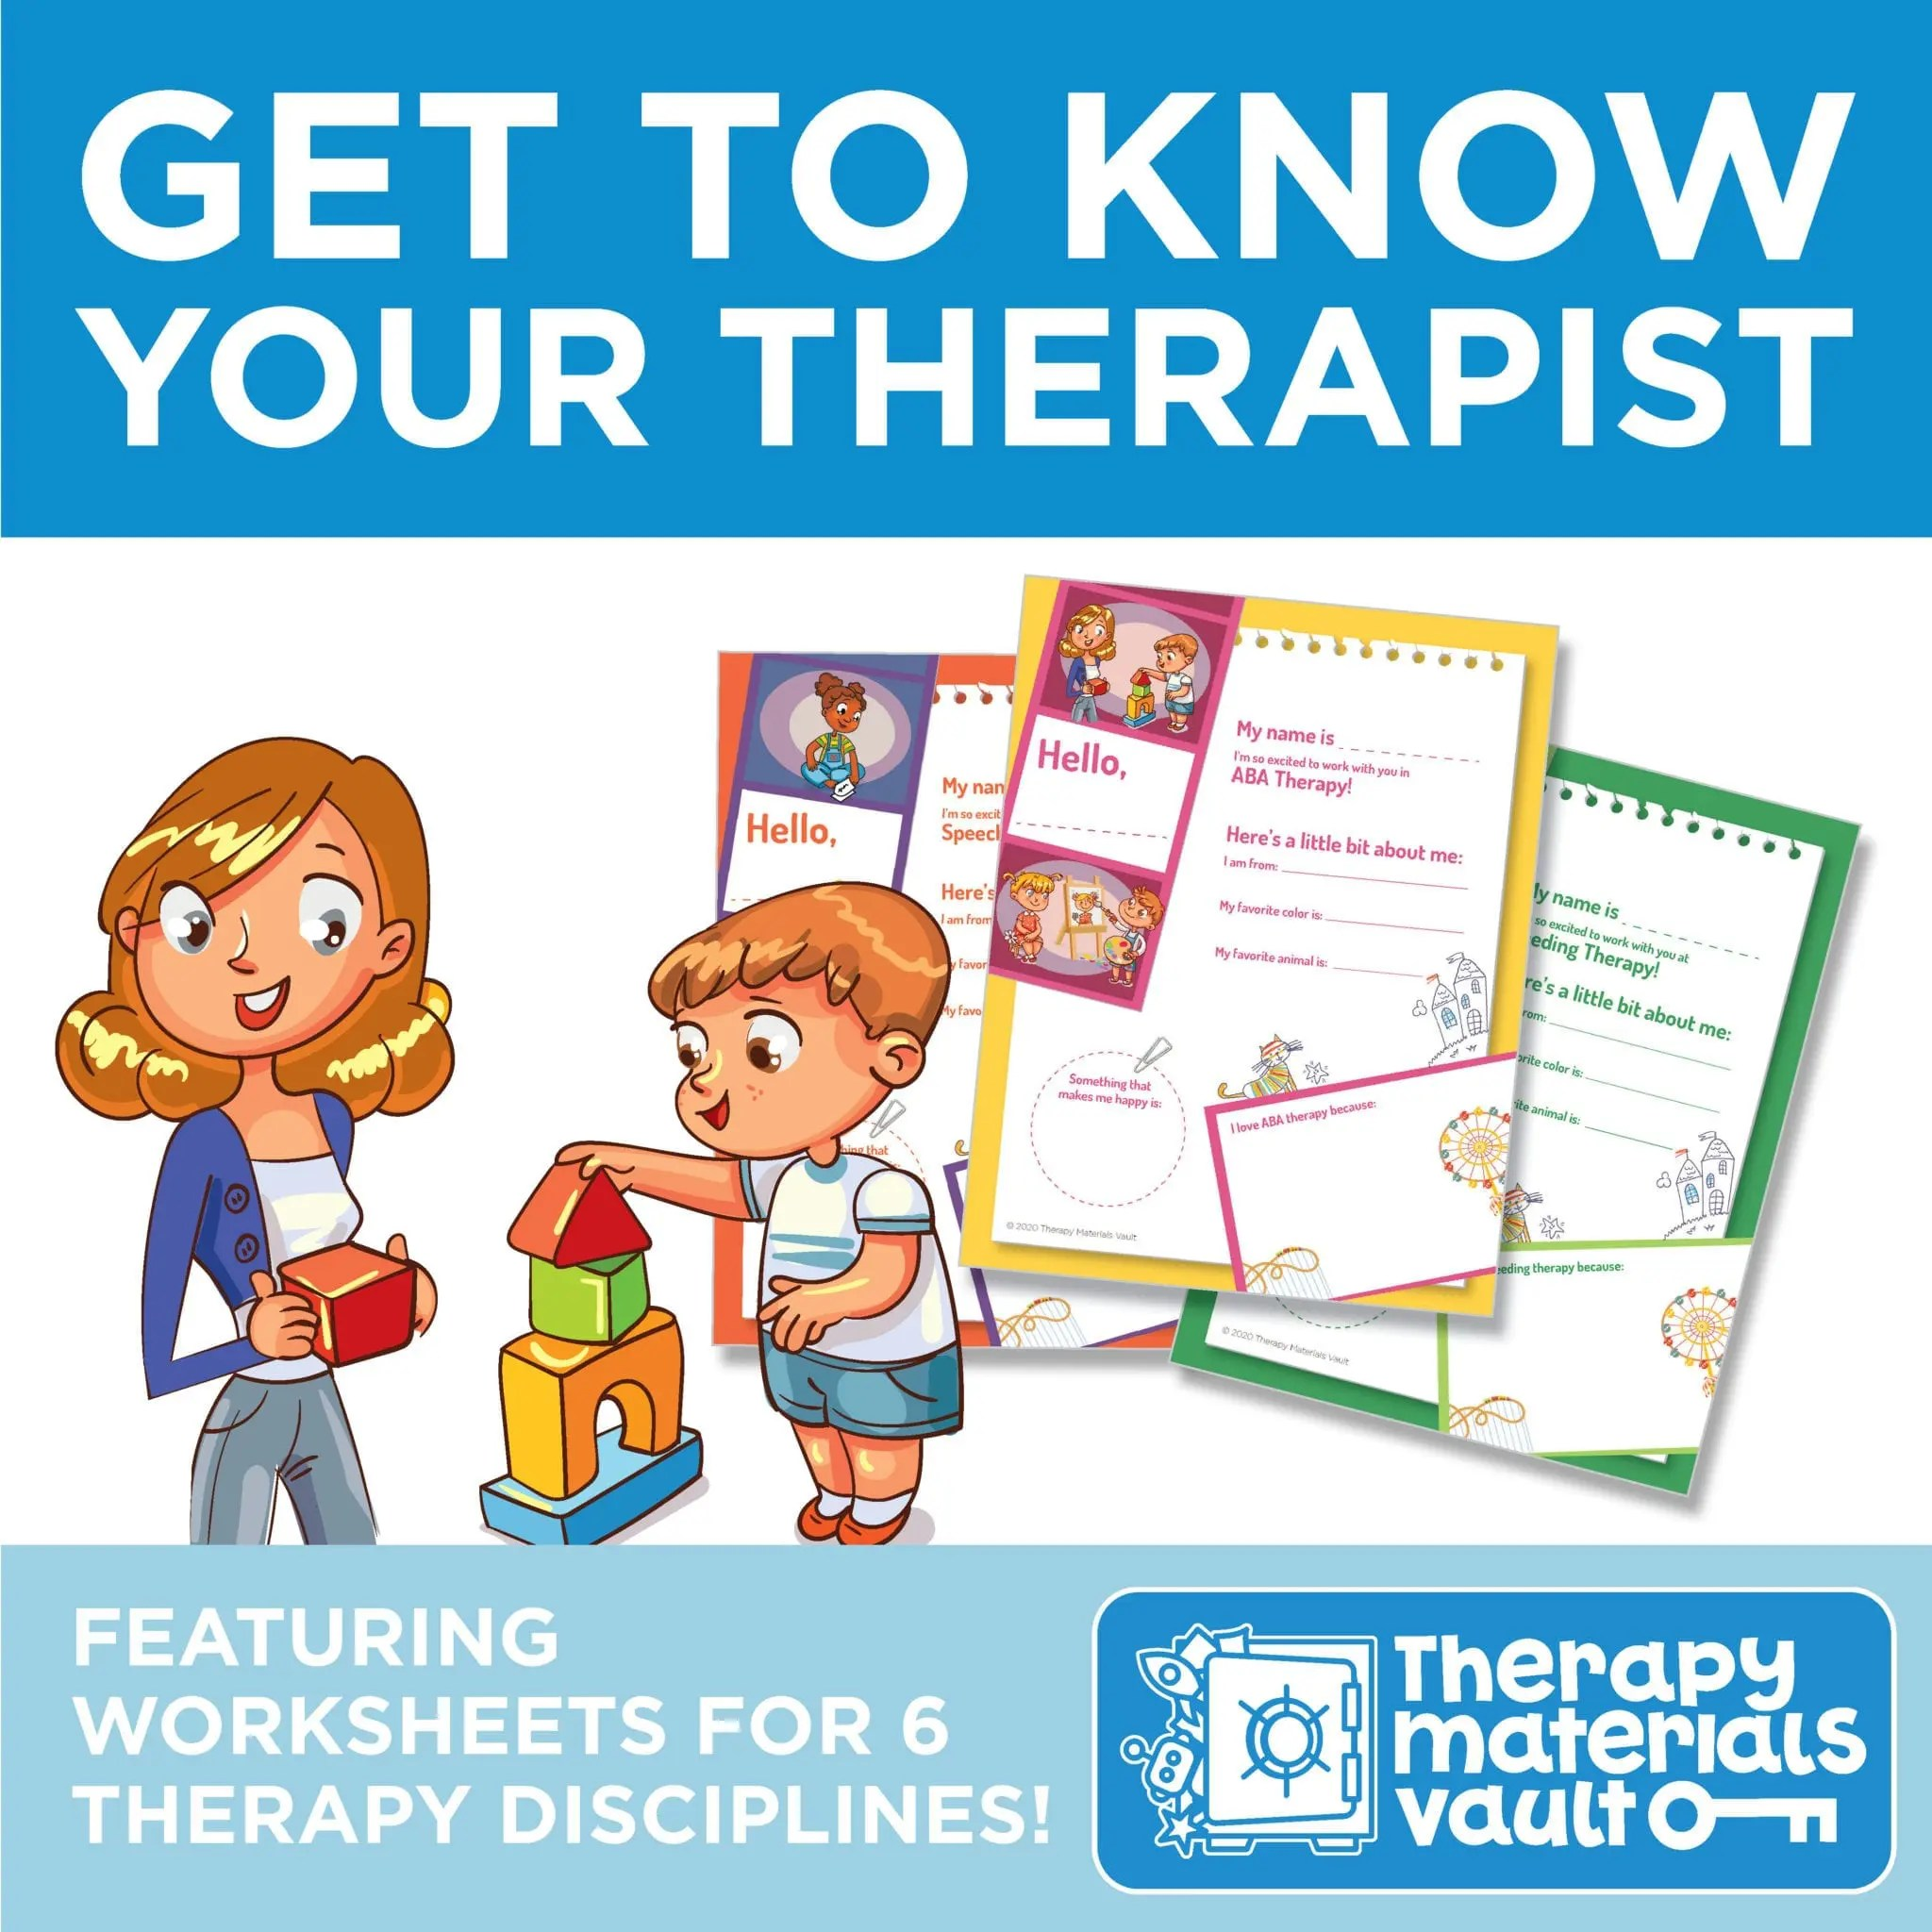 Get To Know Your Therapist Worksheets